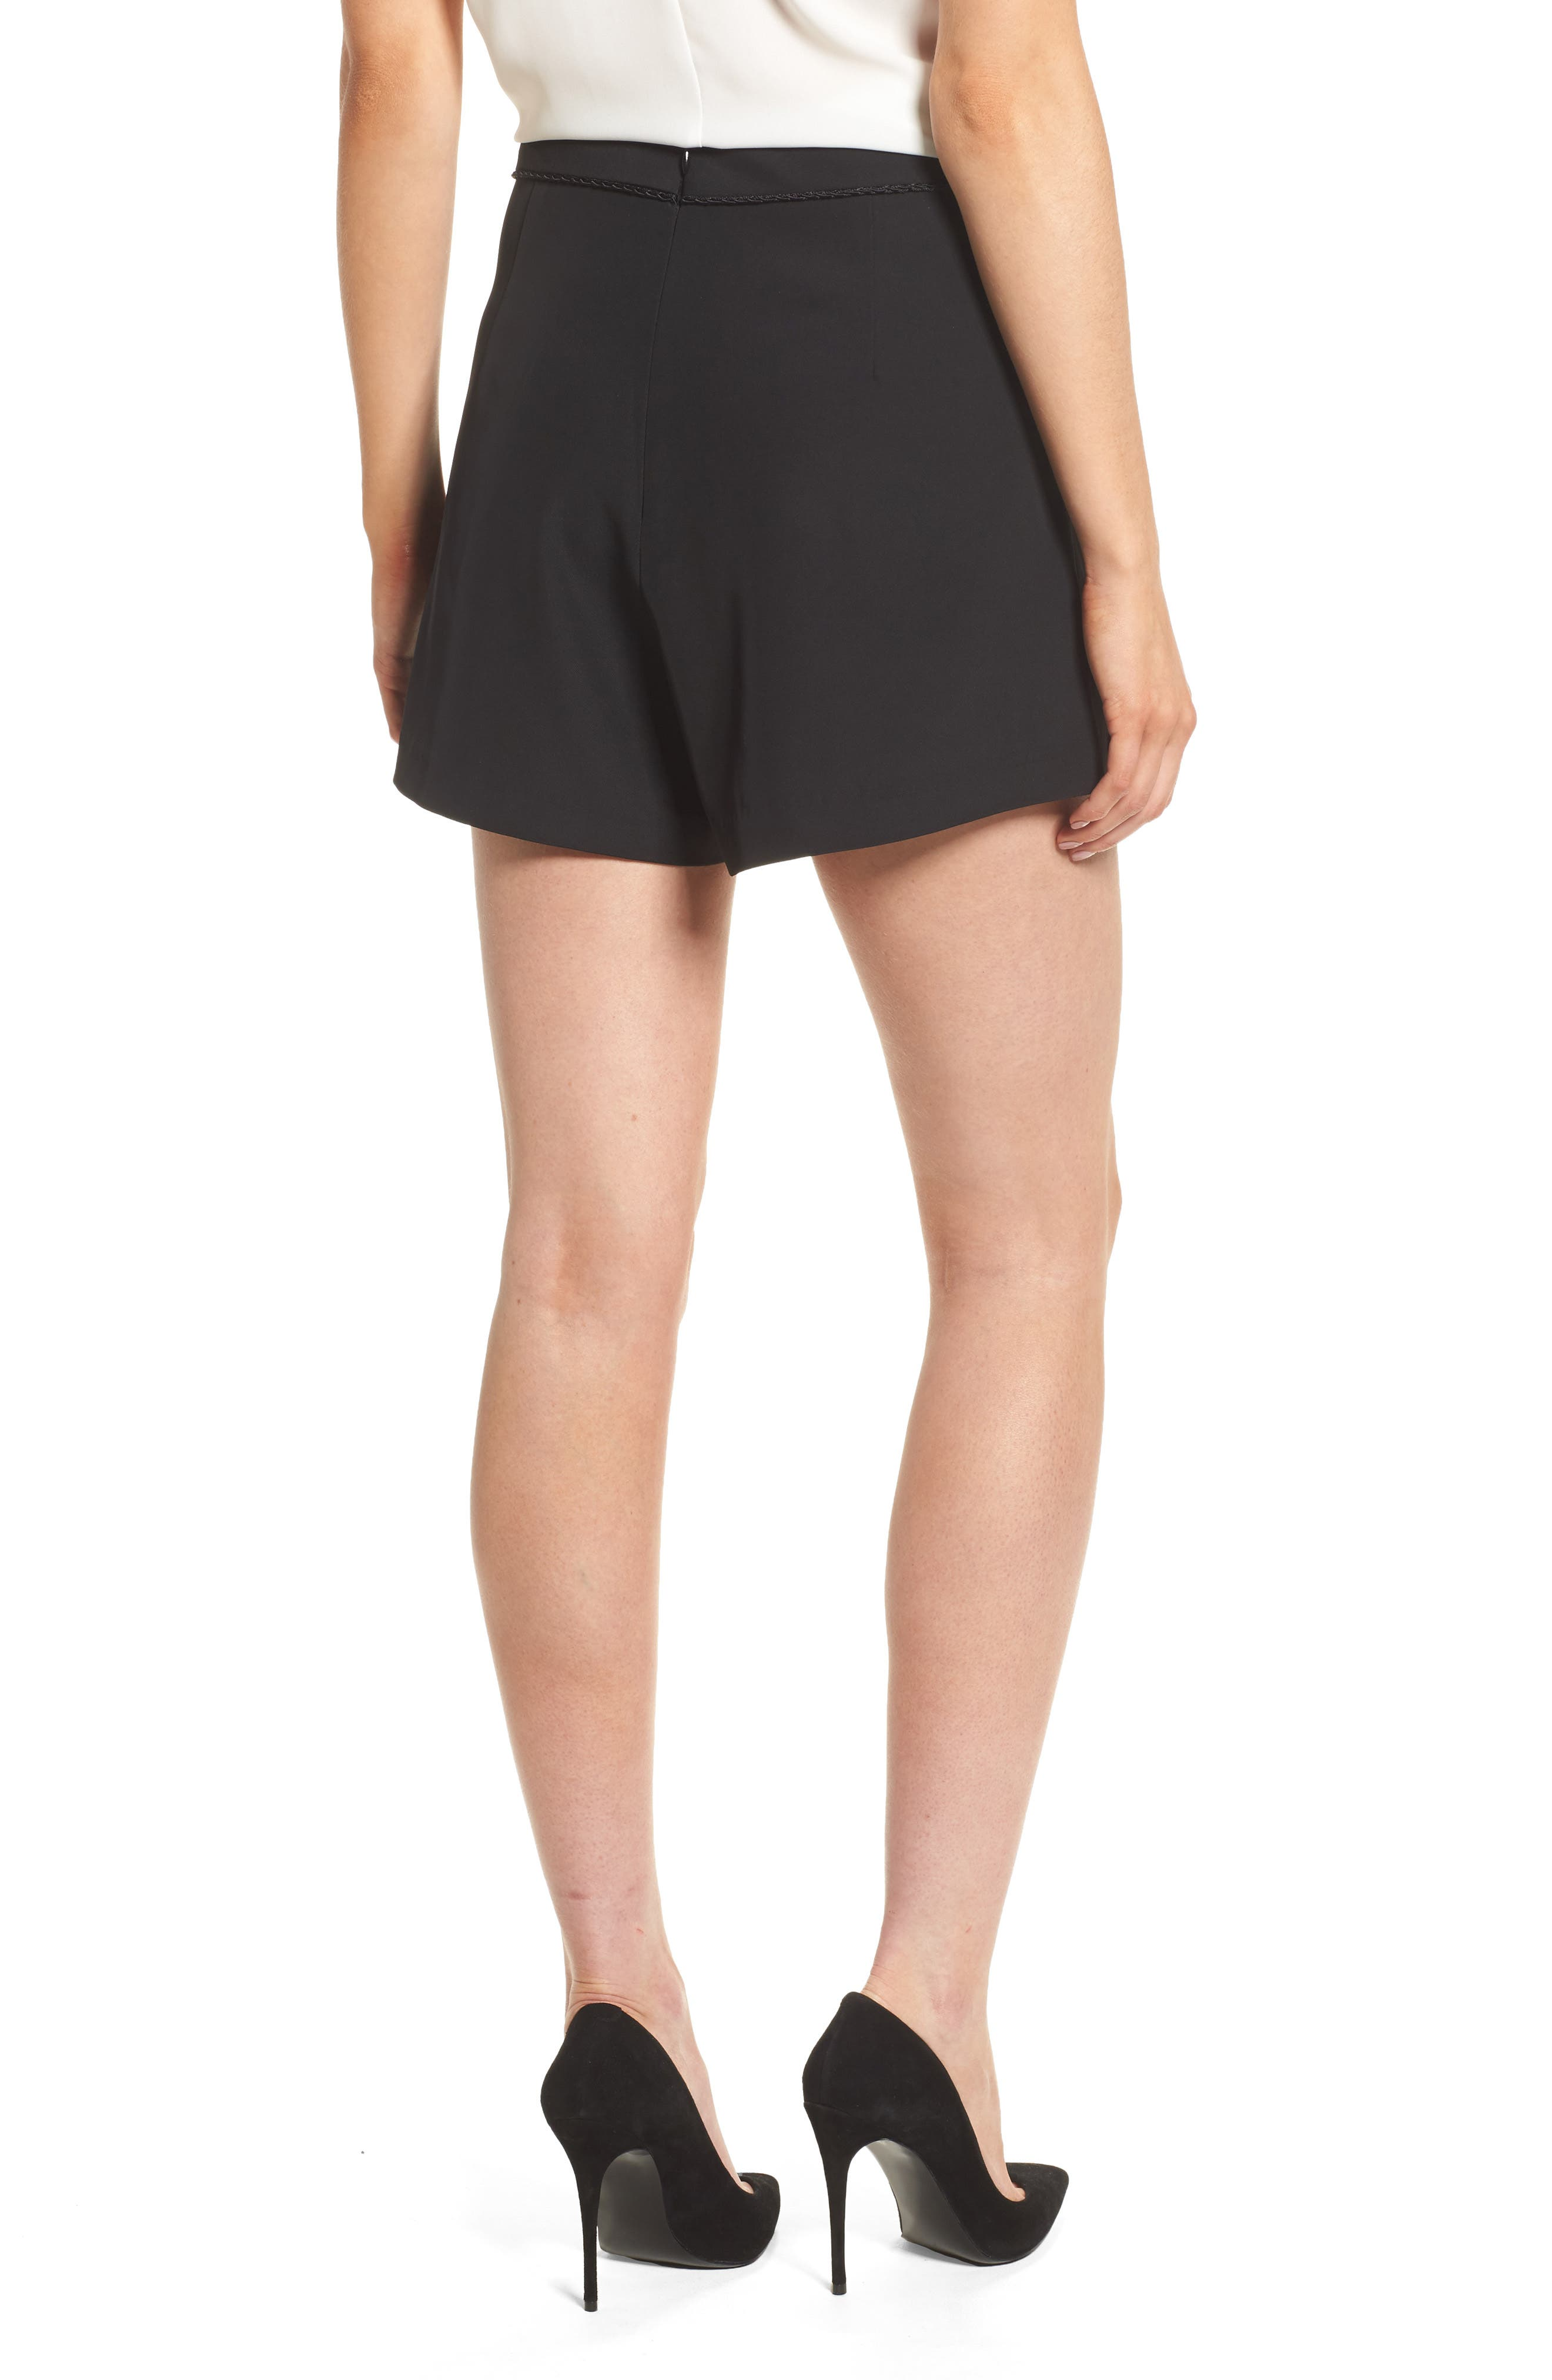 Ceremony High Waist Shorts,                             Alternate thumbnail 2, color,                             Black